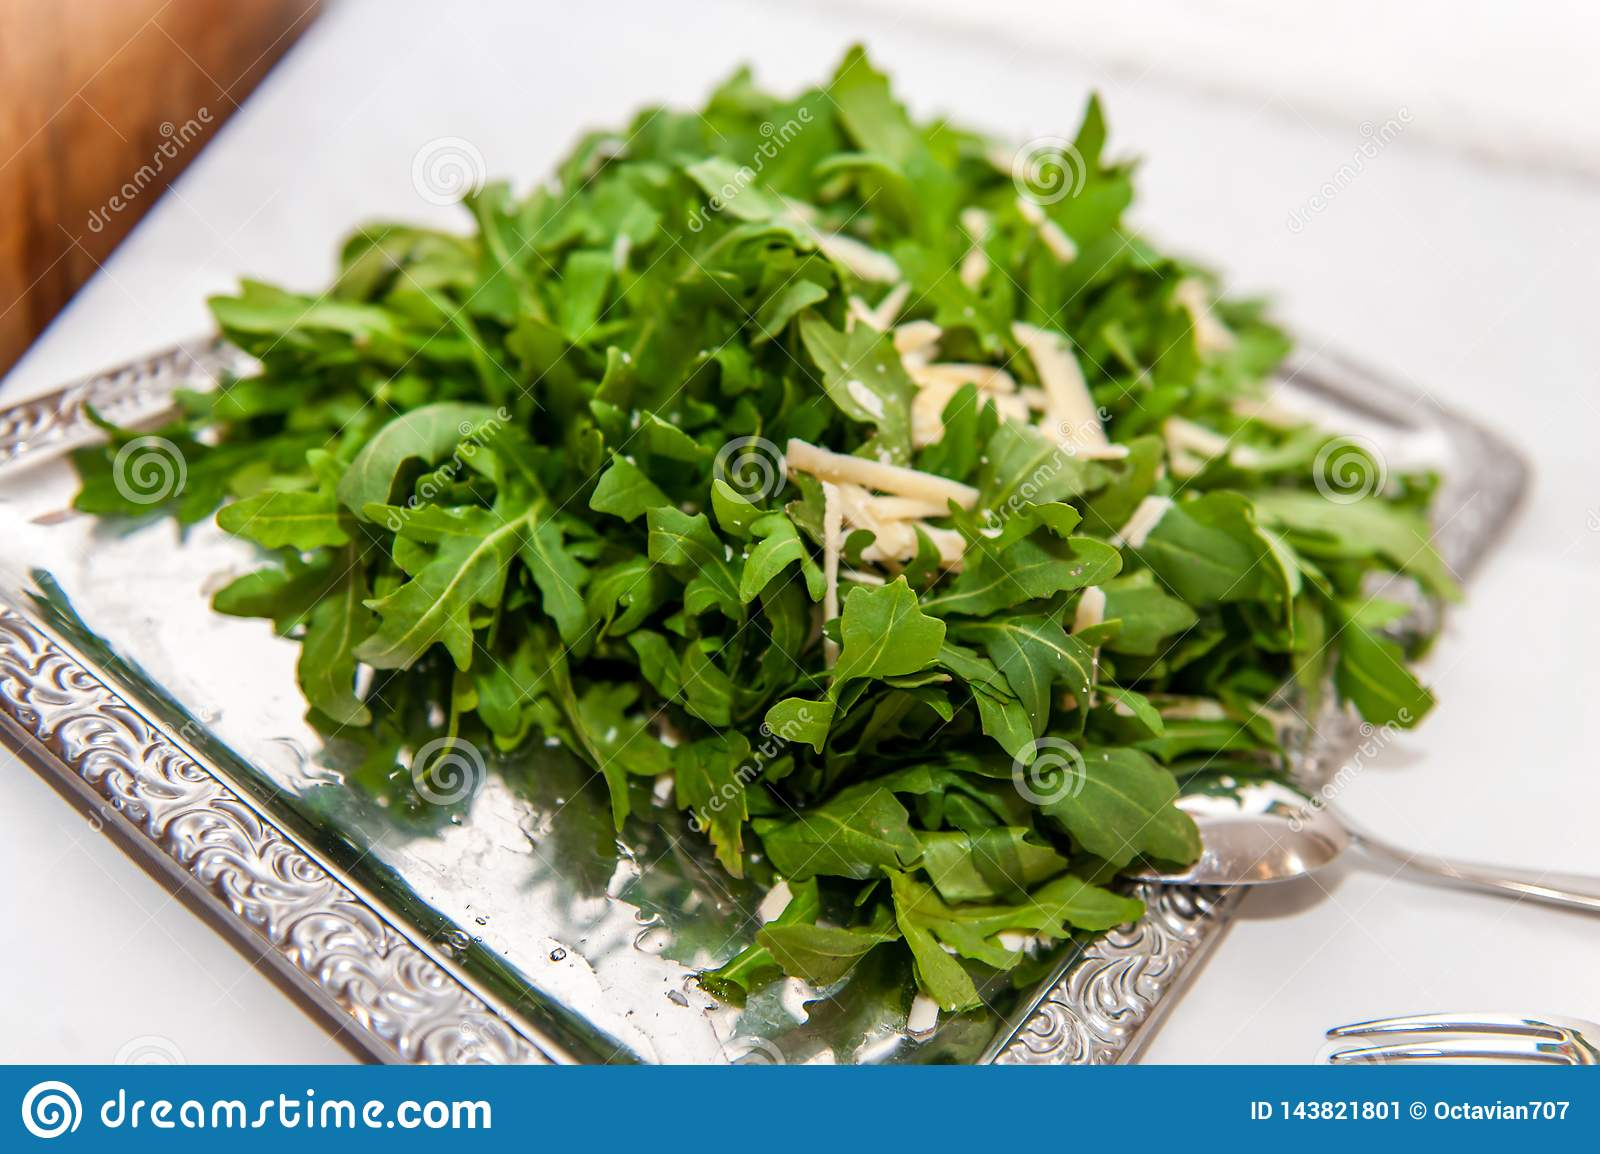 Arugula salad on silver platter